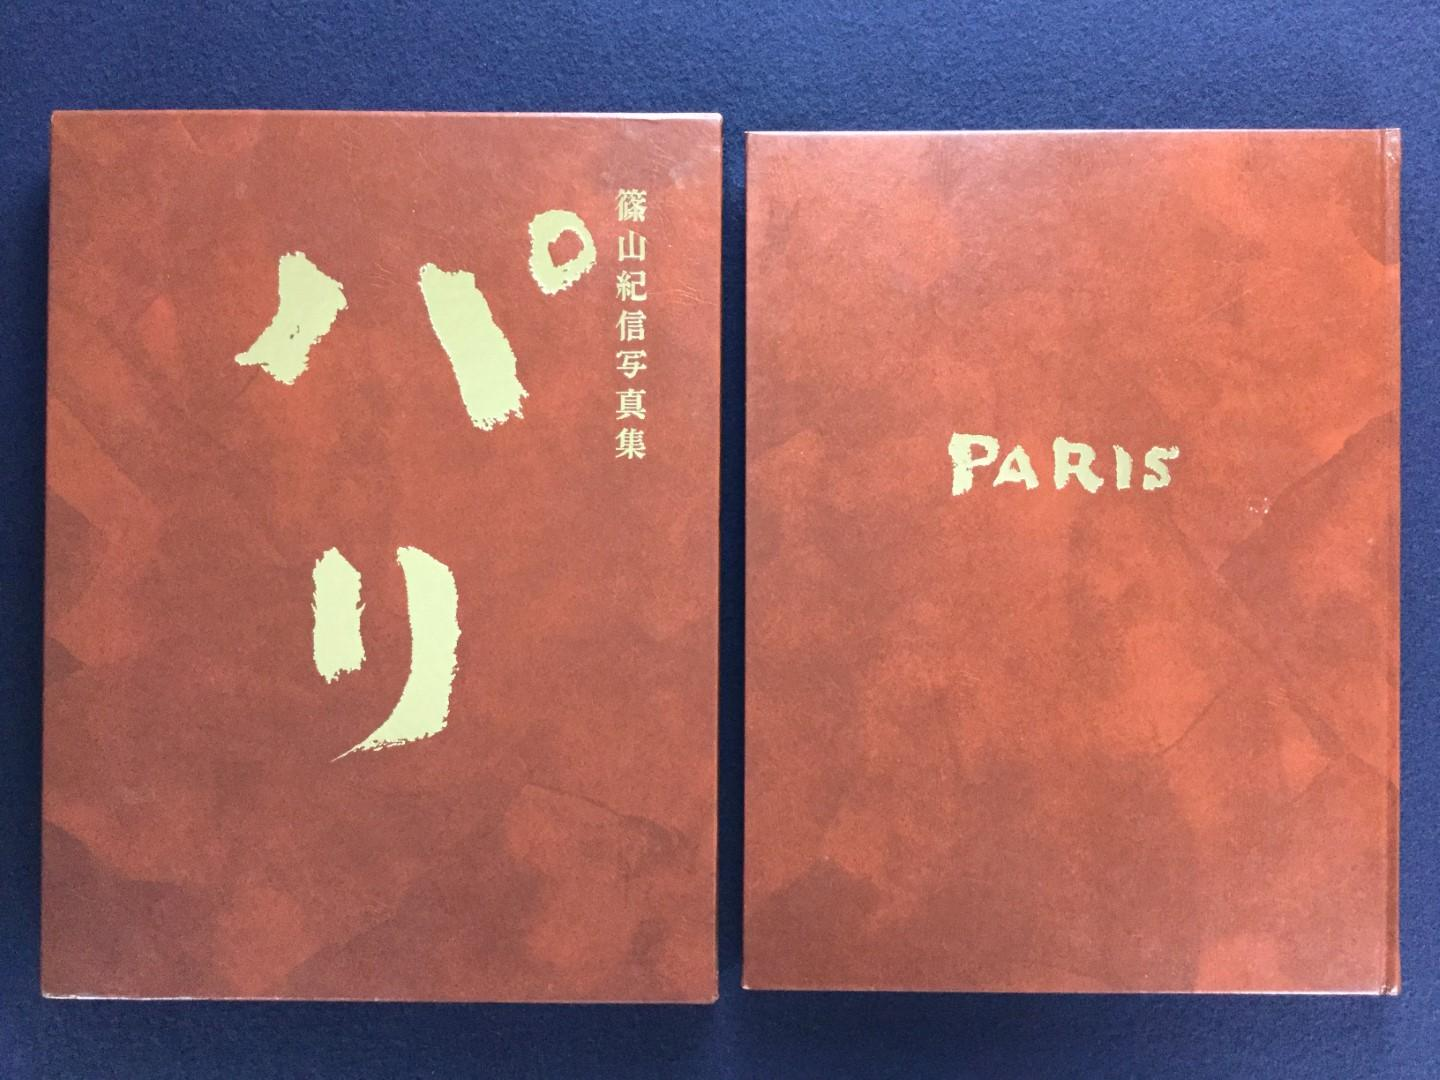 KISHIN_SHINOYAMA_Paris_1977_Signed_Japanese_Photobook_KISHIN_SHINOYAMA_Assez_bon_Couverture_rigide